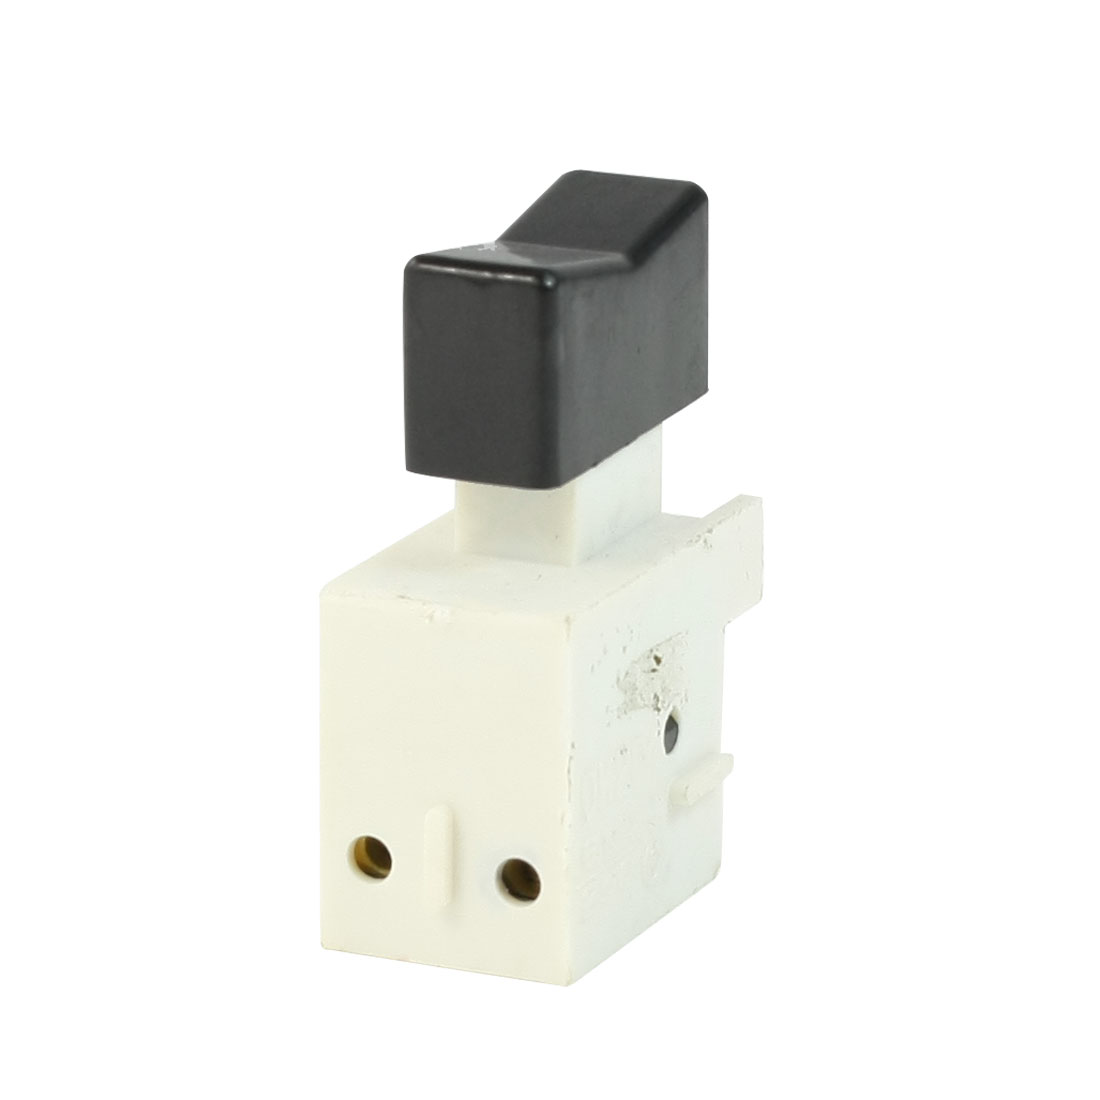 AC 250V 6A DPST Momentary Manual Trigger Switch for Dragon Electric Drill